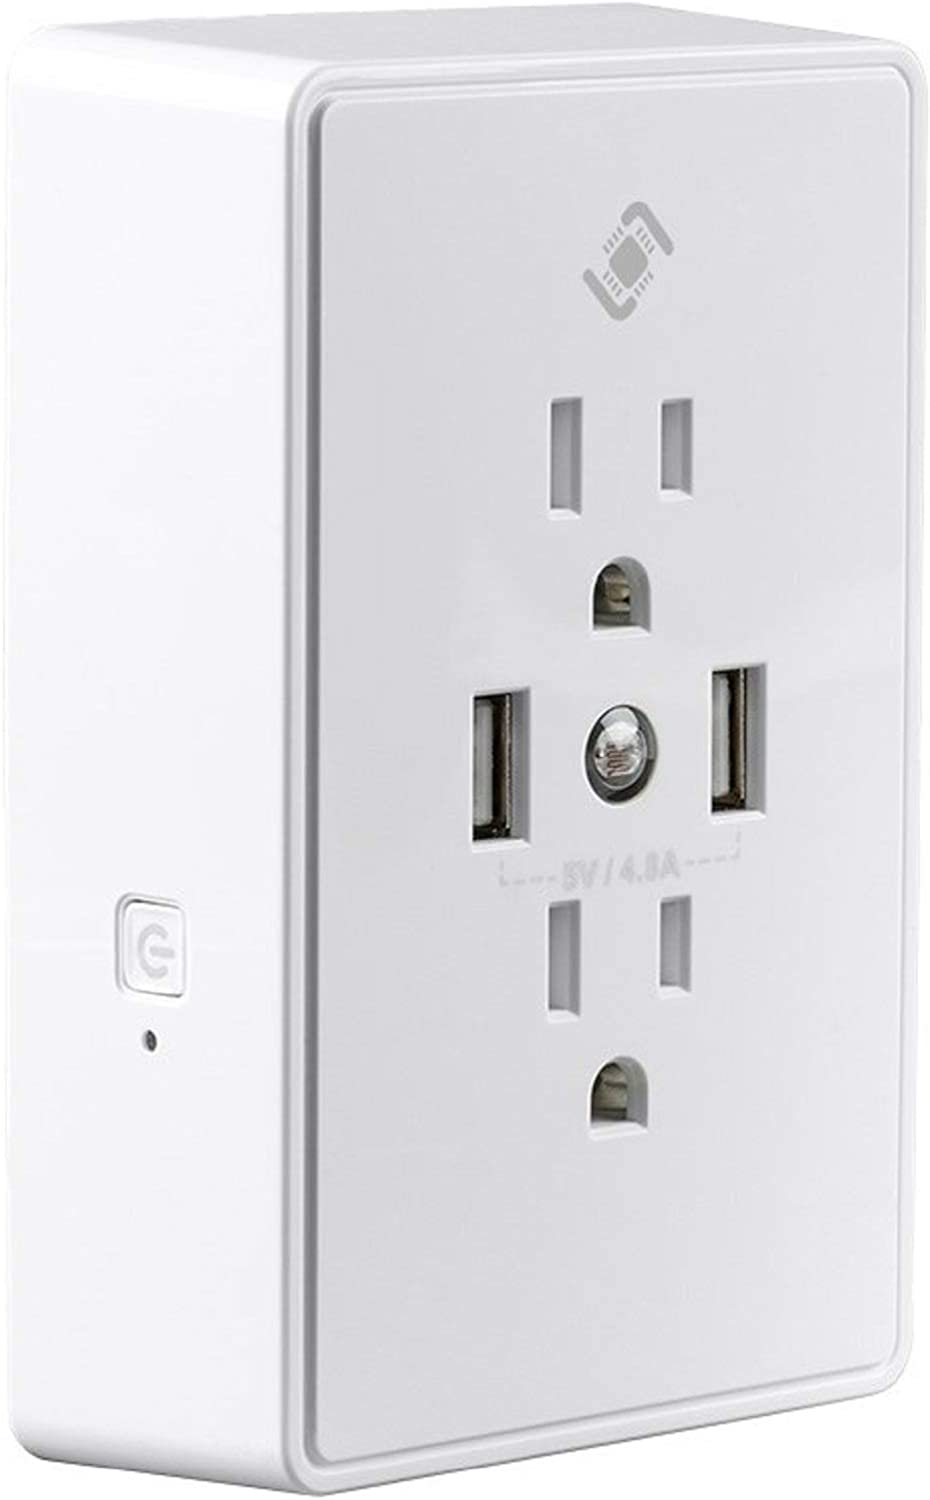 Monoprice Wireless Smart Plug Wall Outlet - White, with 2 Receptacles 15A, 2 USB 4.8A Ports, Night Light, No Hub Required, Works W/Alexa & Google Home